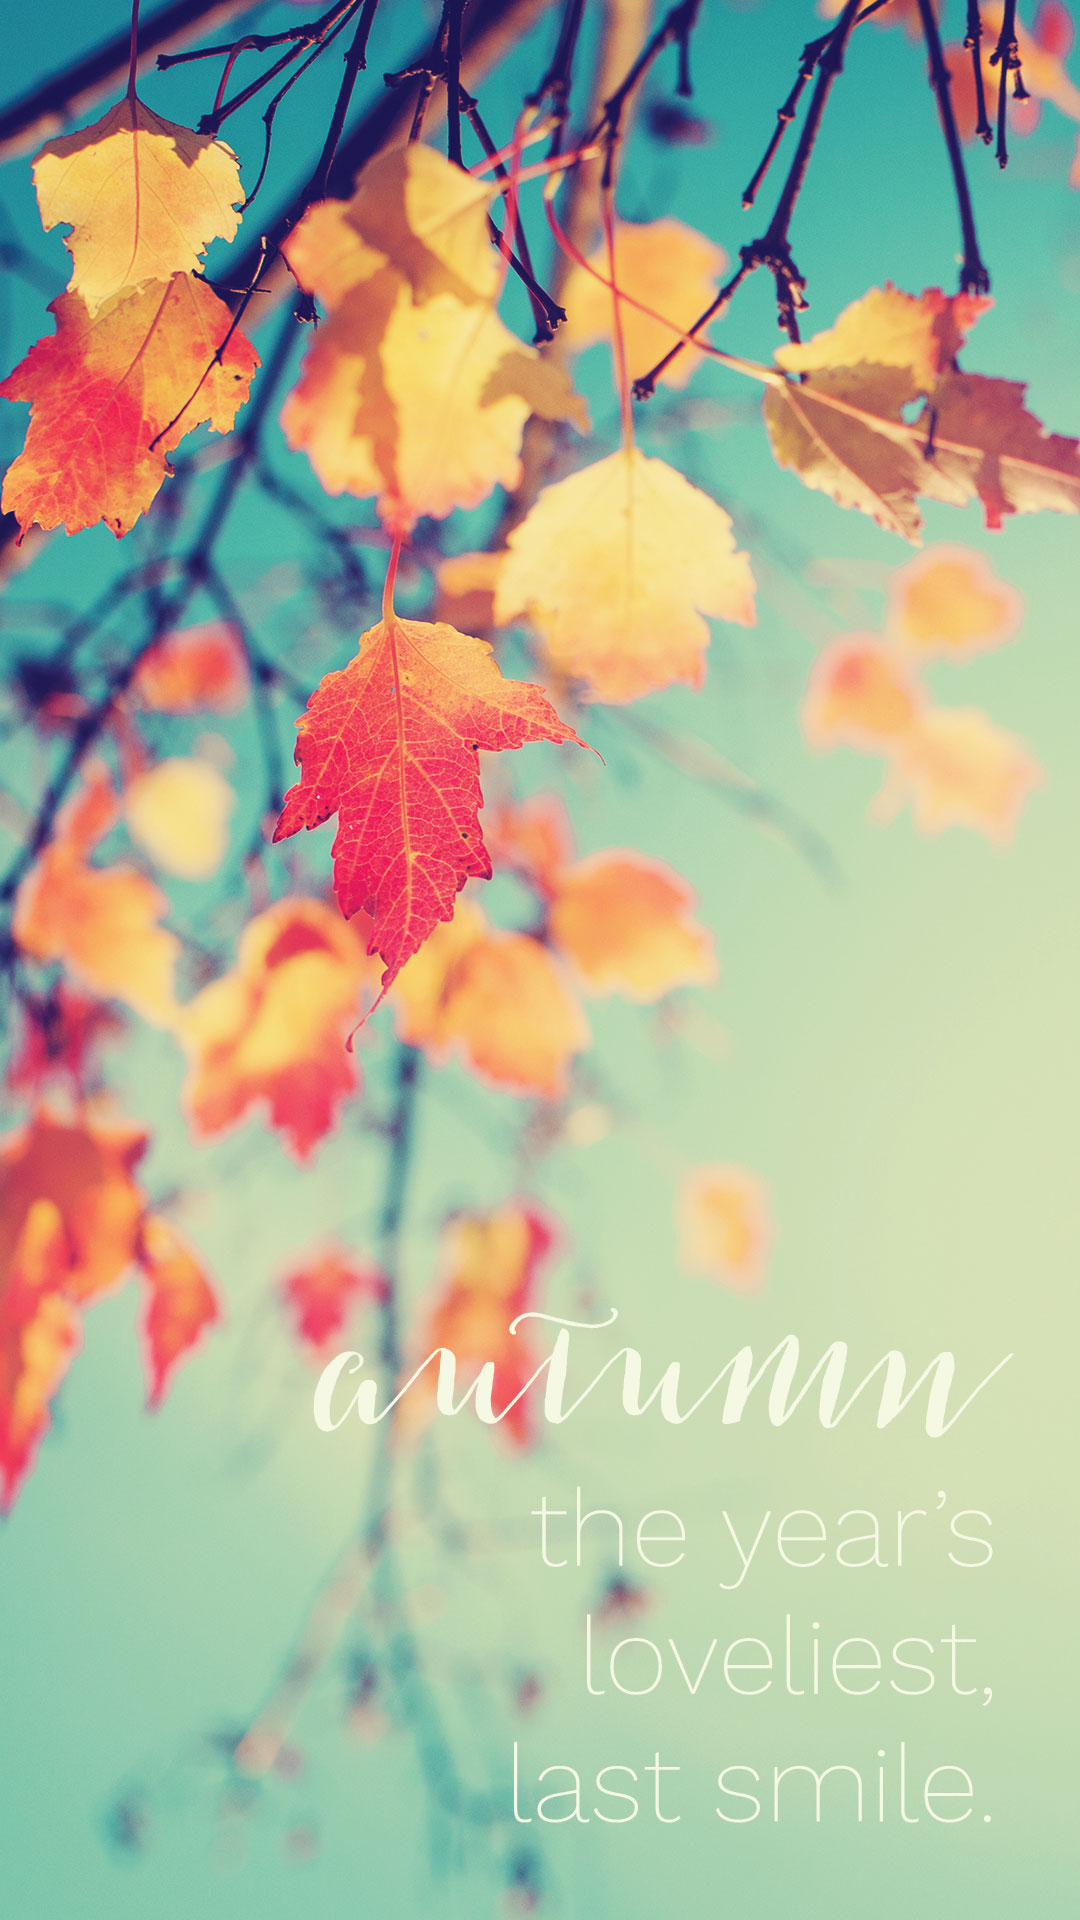 Cute Rustic Fall Wallpapers November Wallpapers For Mobile Iphone Android Pixelstalk Net